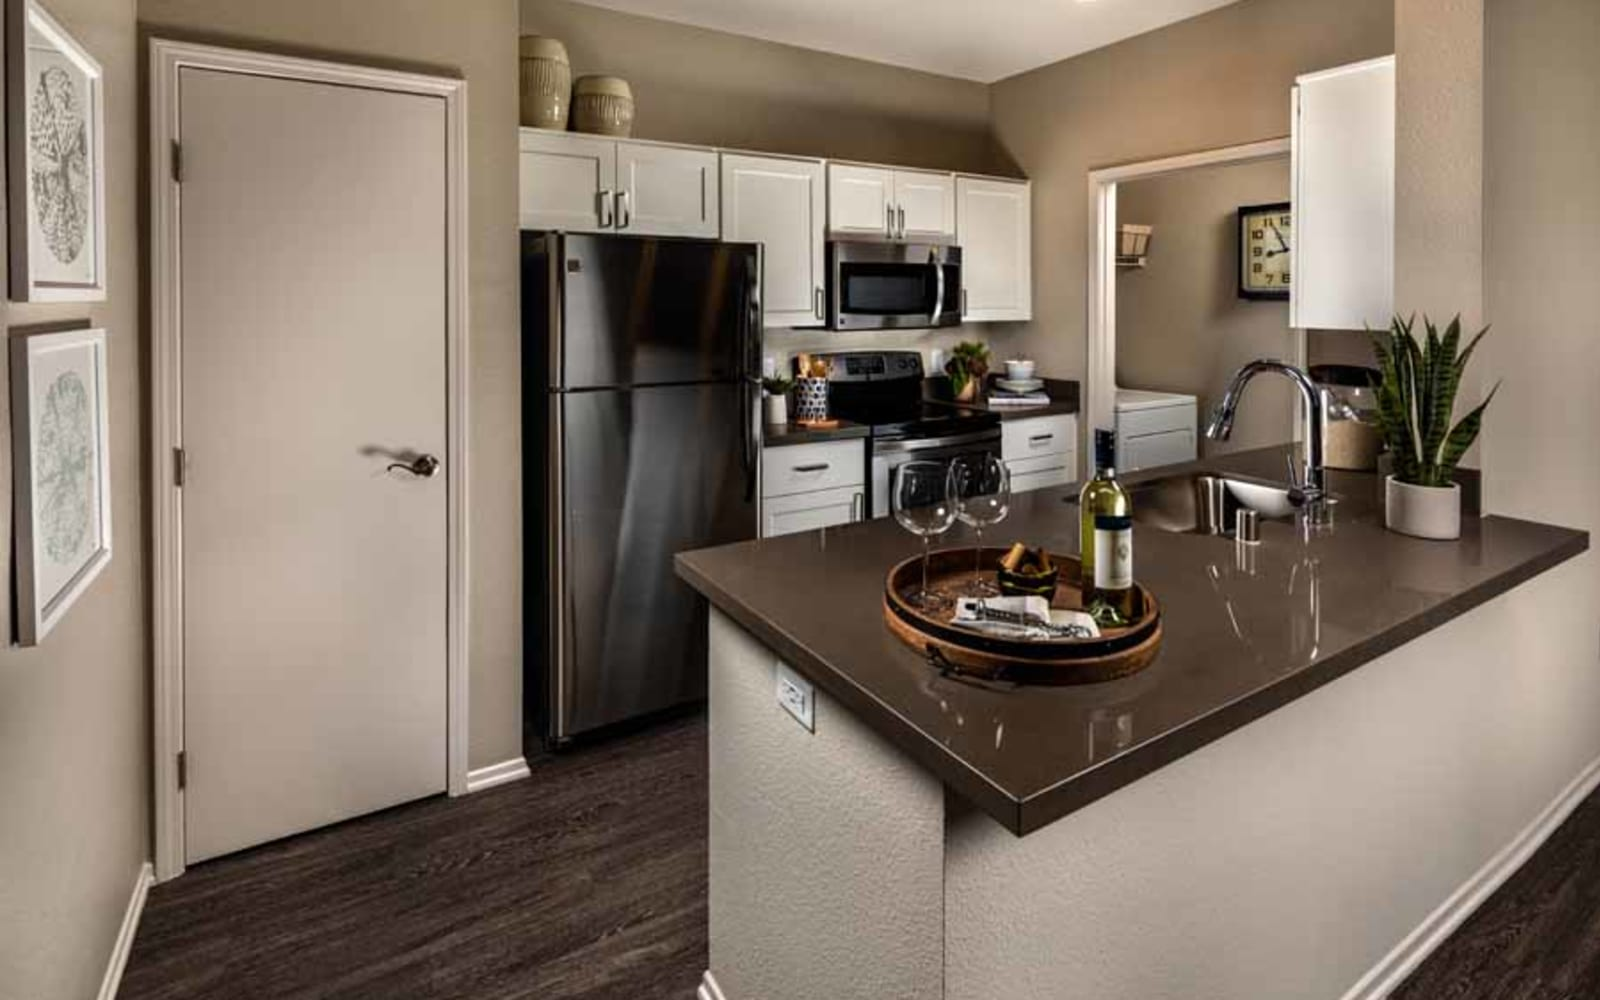 Stainless steel appliances in an apartment kitchen at Castlerock at Sycamore Highlands in Riverside, California